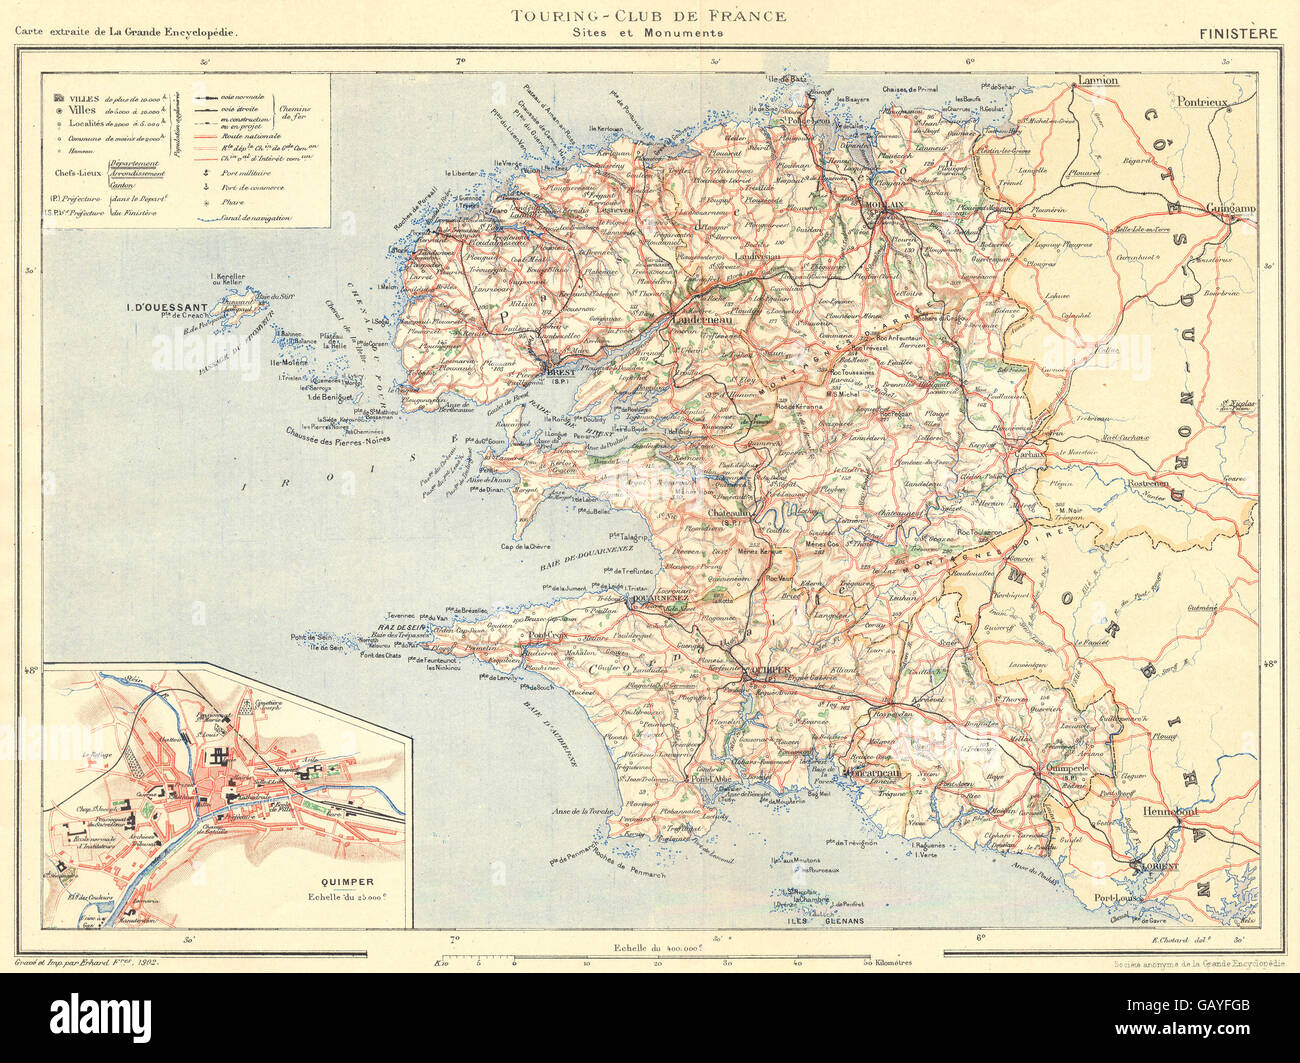 Cornouaille Chaises Finistere Map Stock Photos Finistere Map Stock Images Alamy